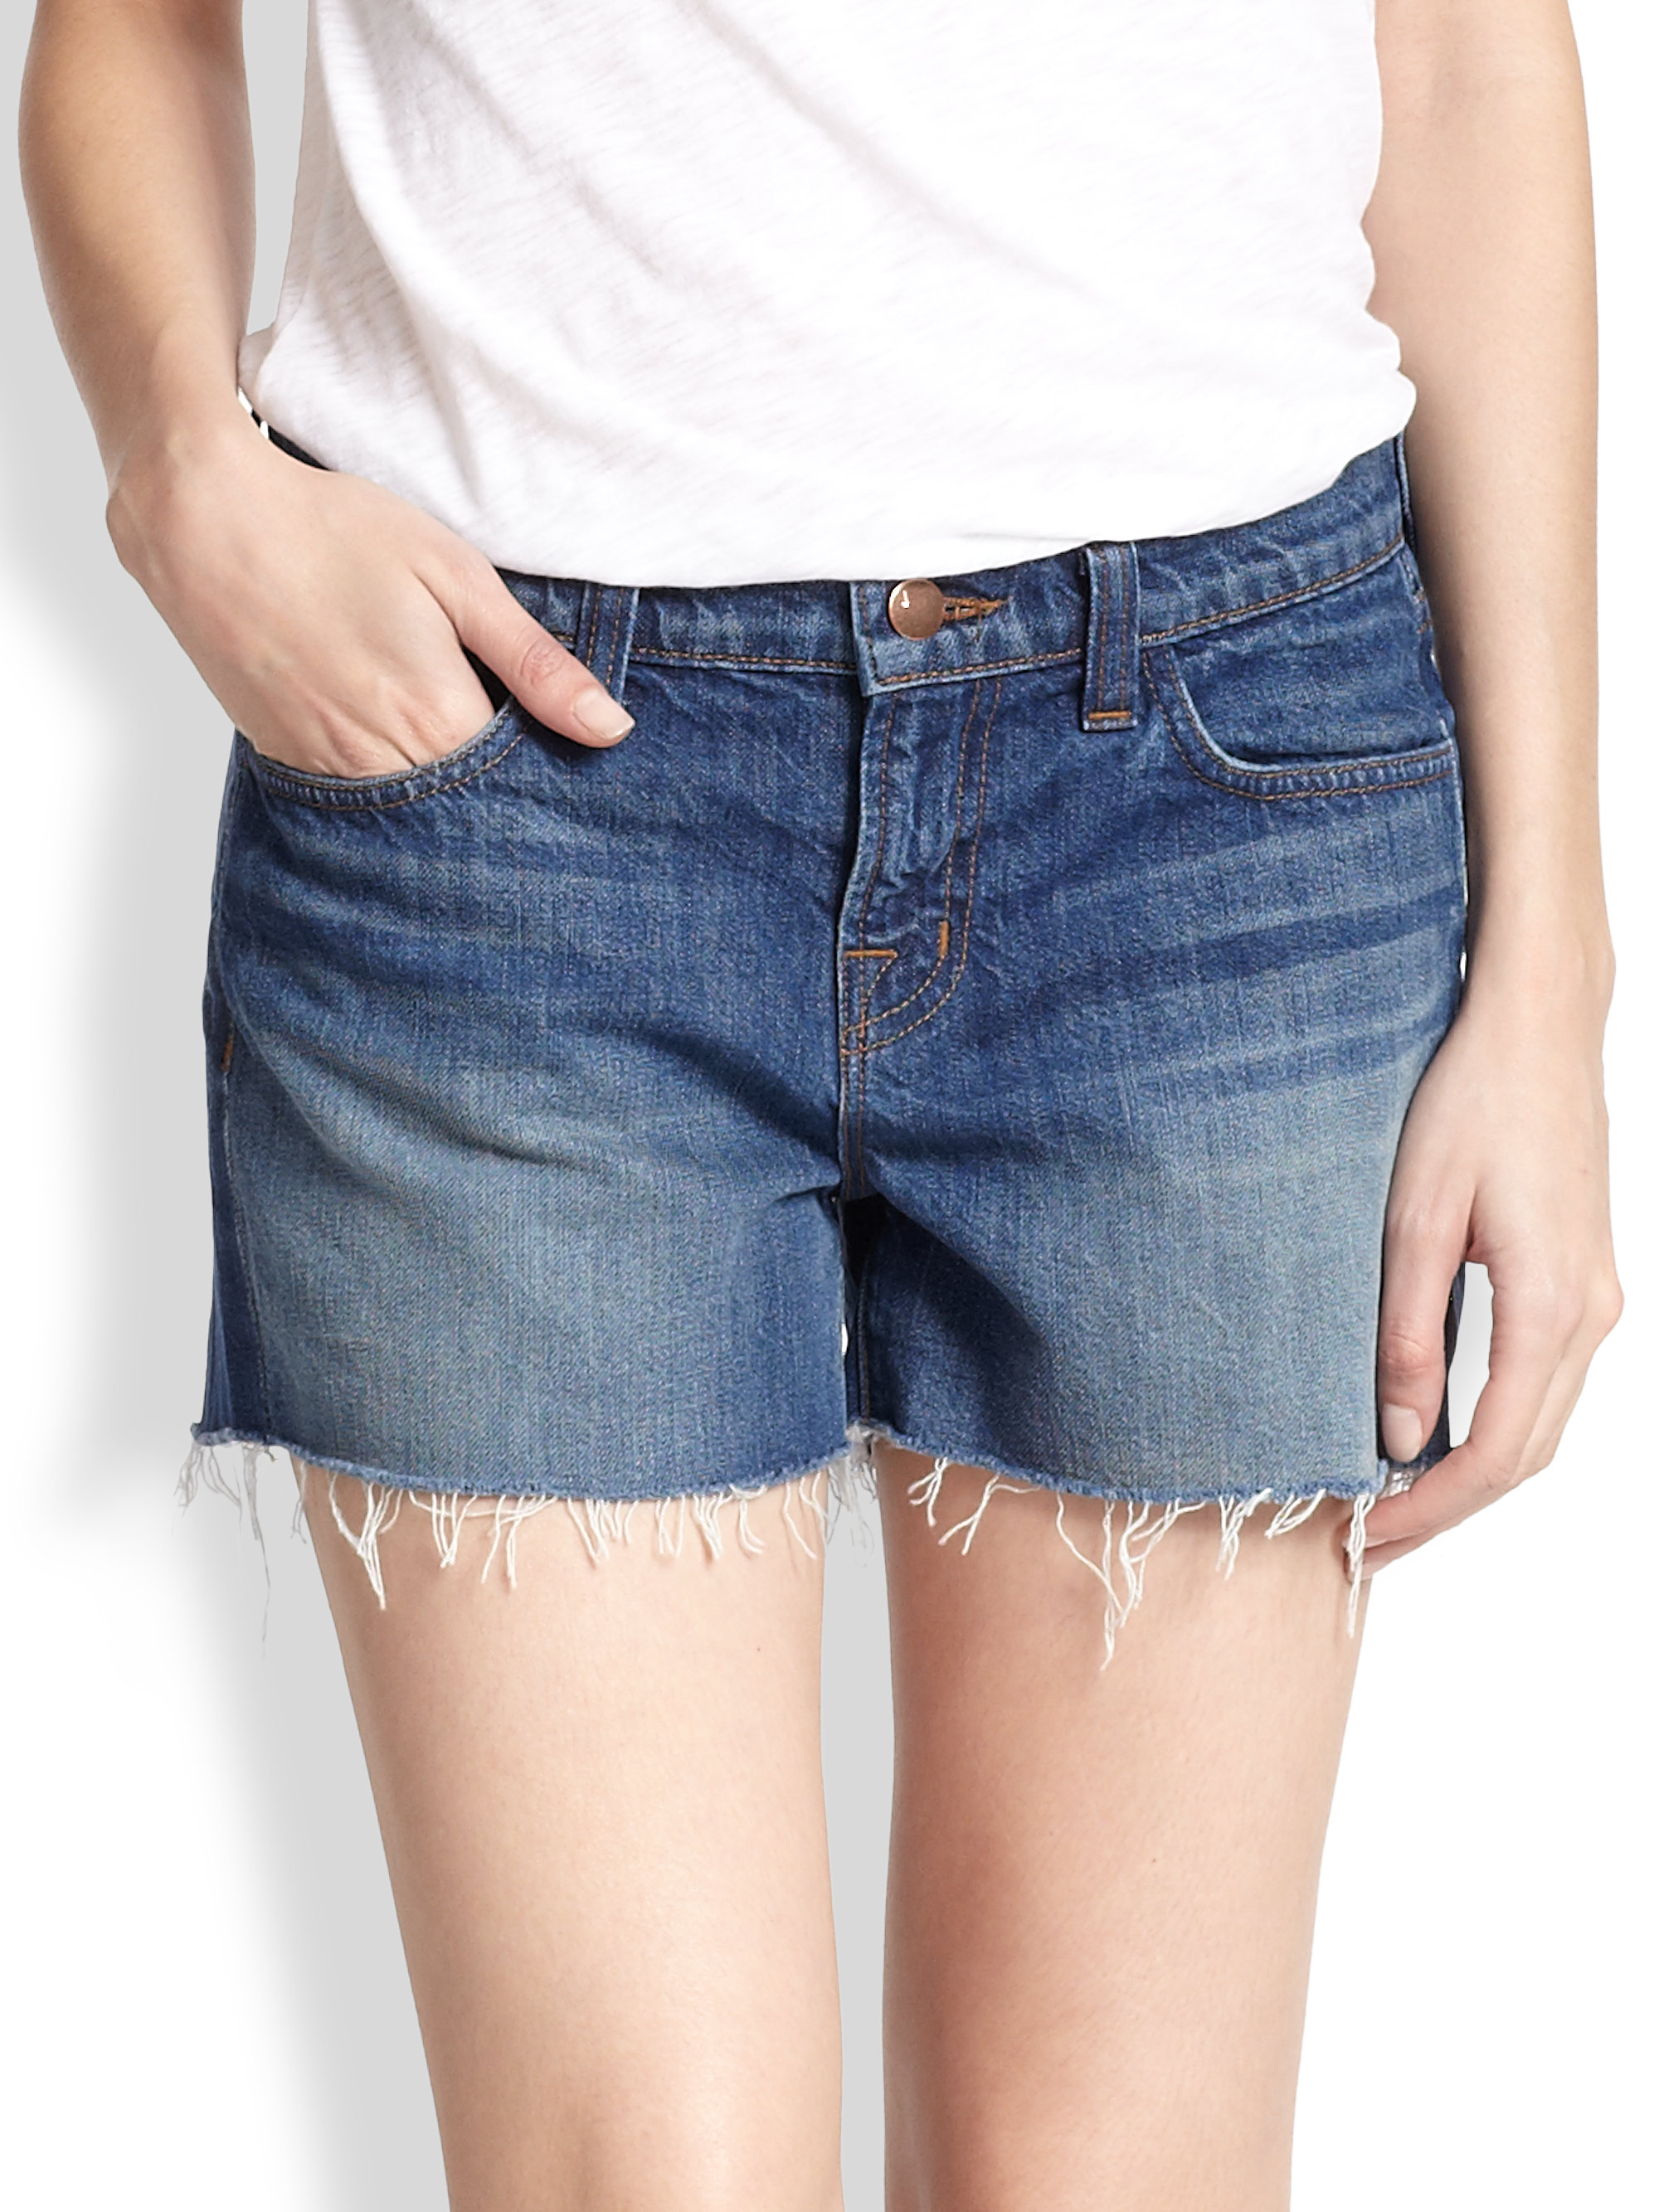 J brand Low-rise Cut-off Denim Shorts in Blue | Lyst